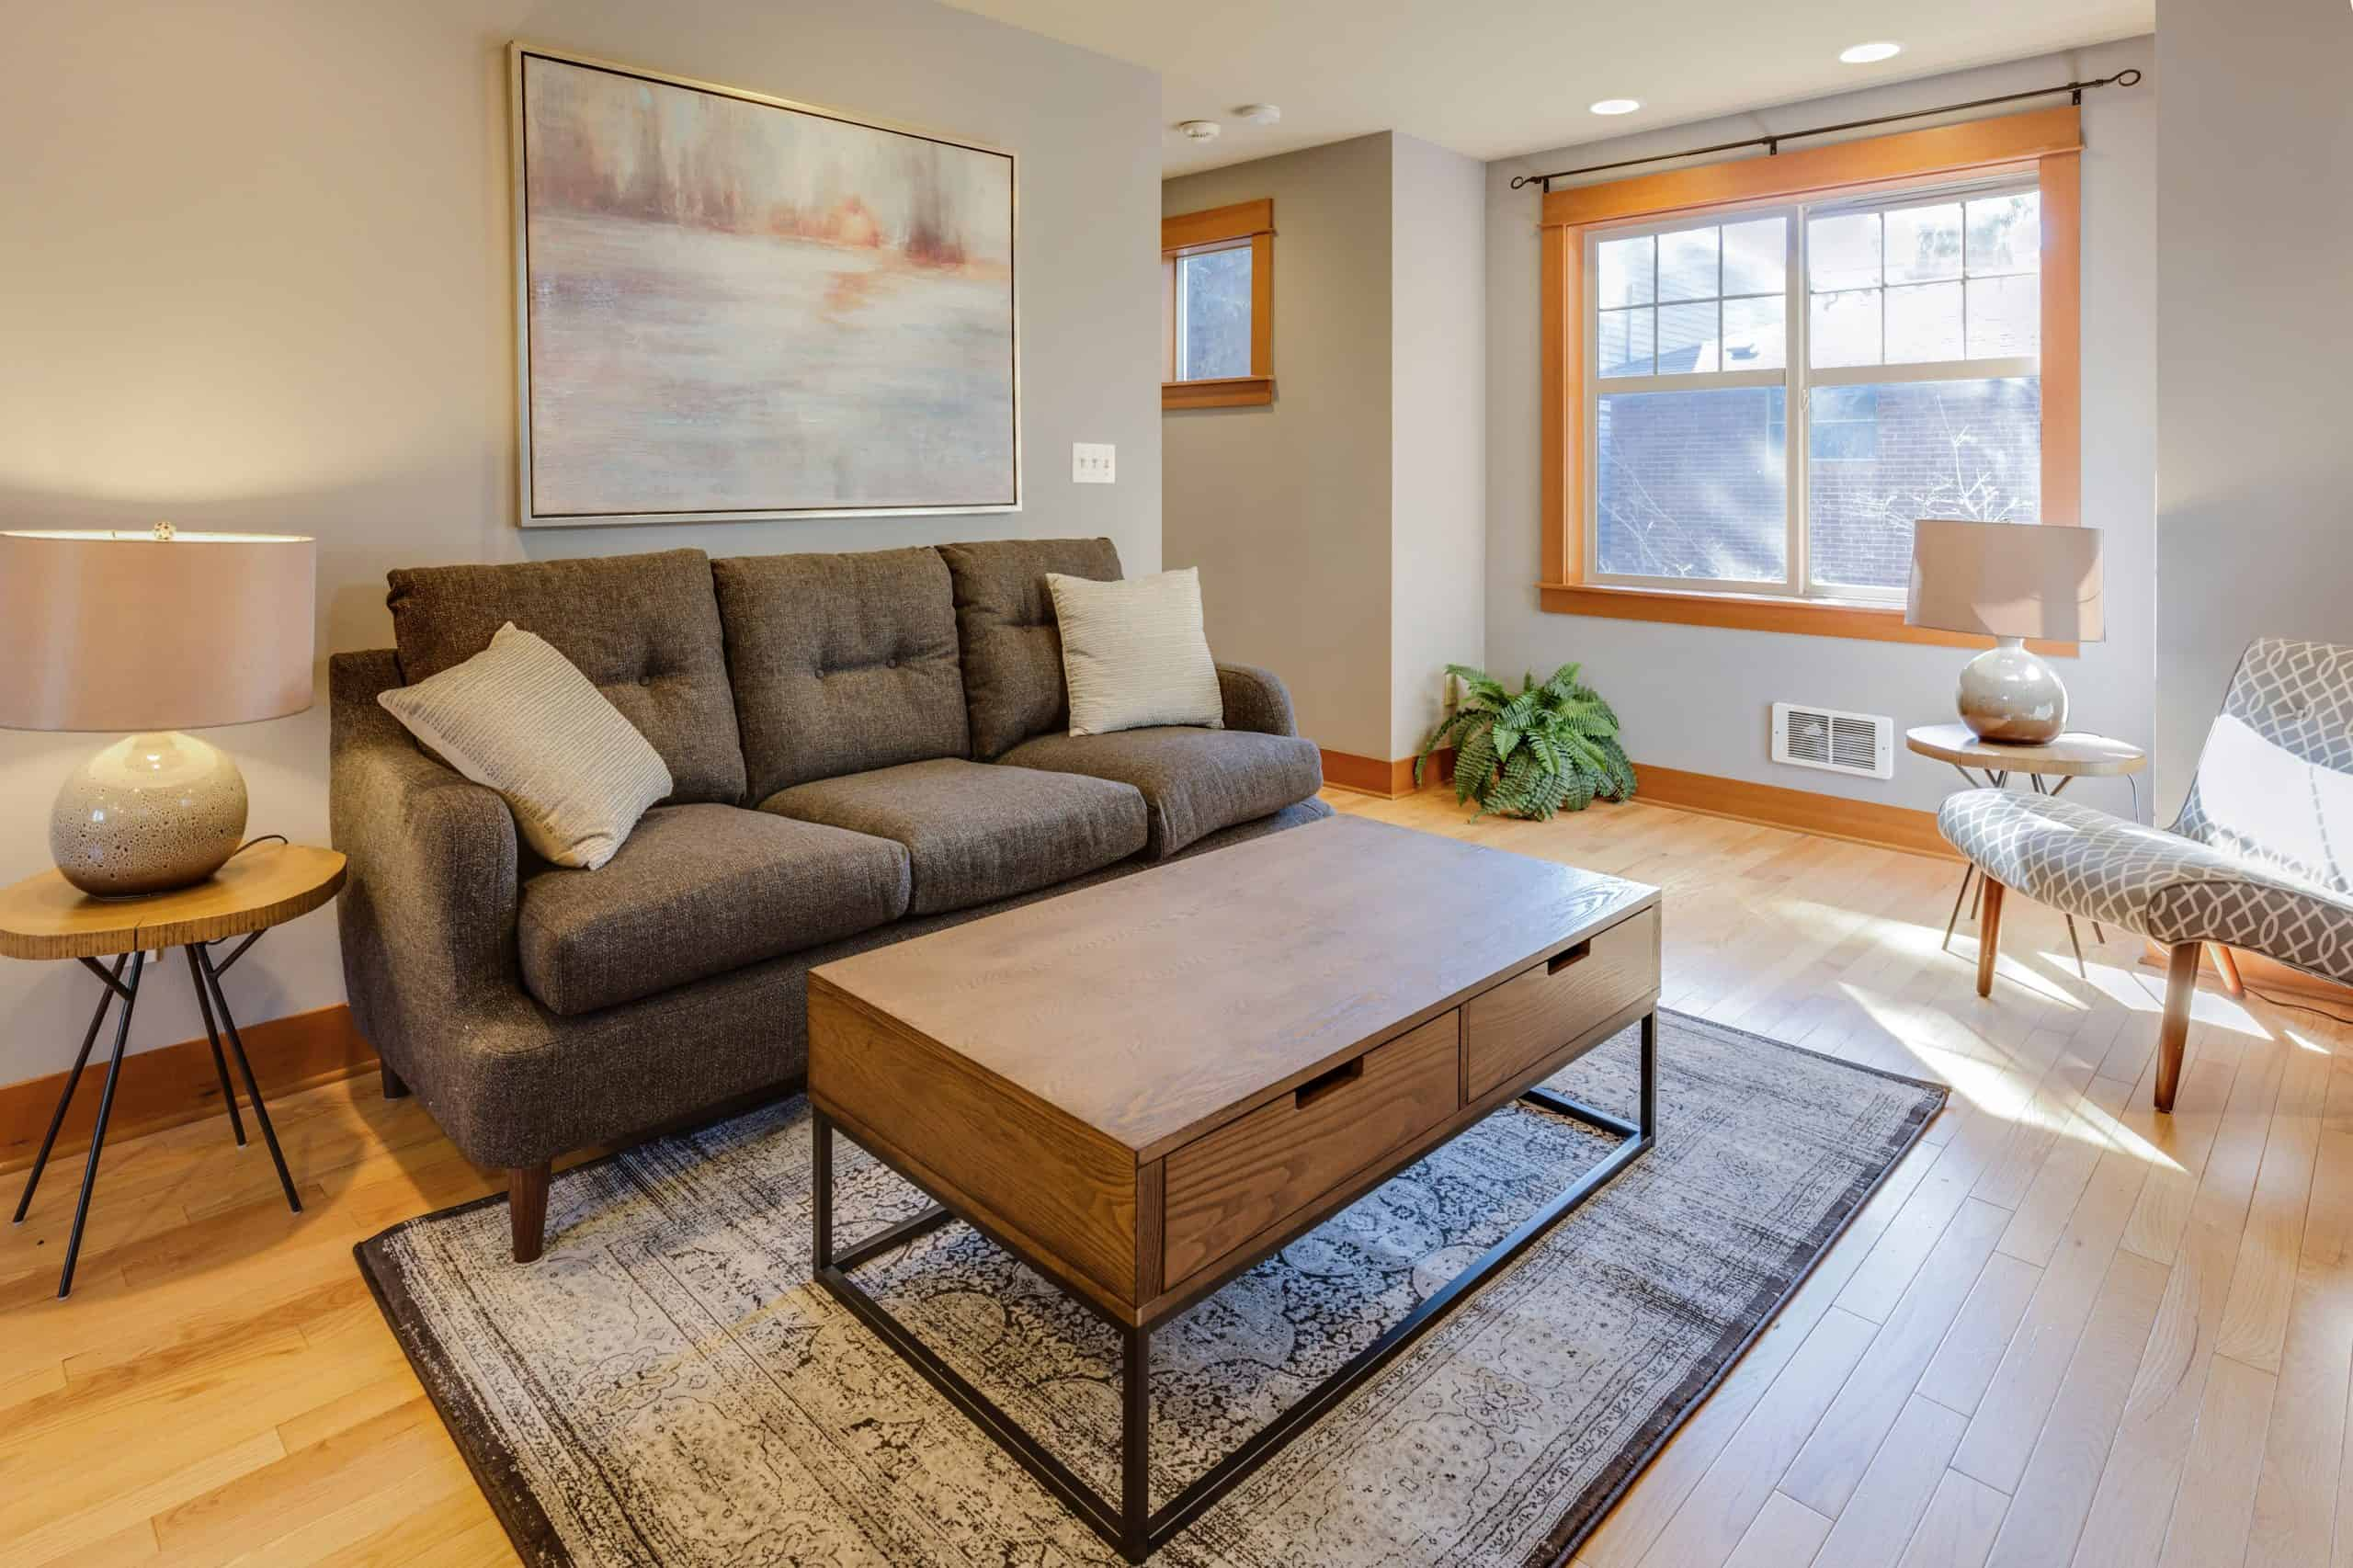 Best Interior Design Ideas To Spruce Up A Small Hall